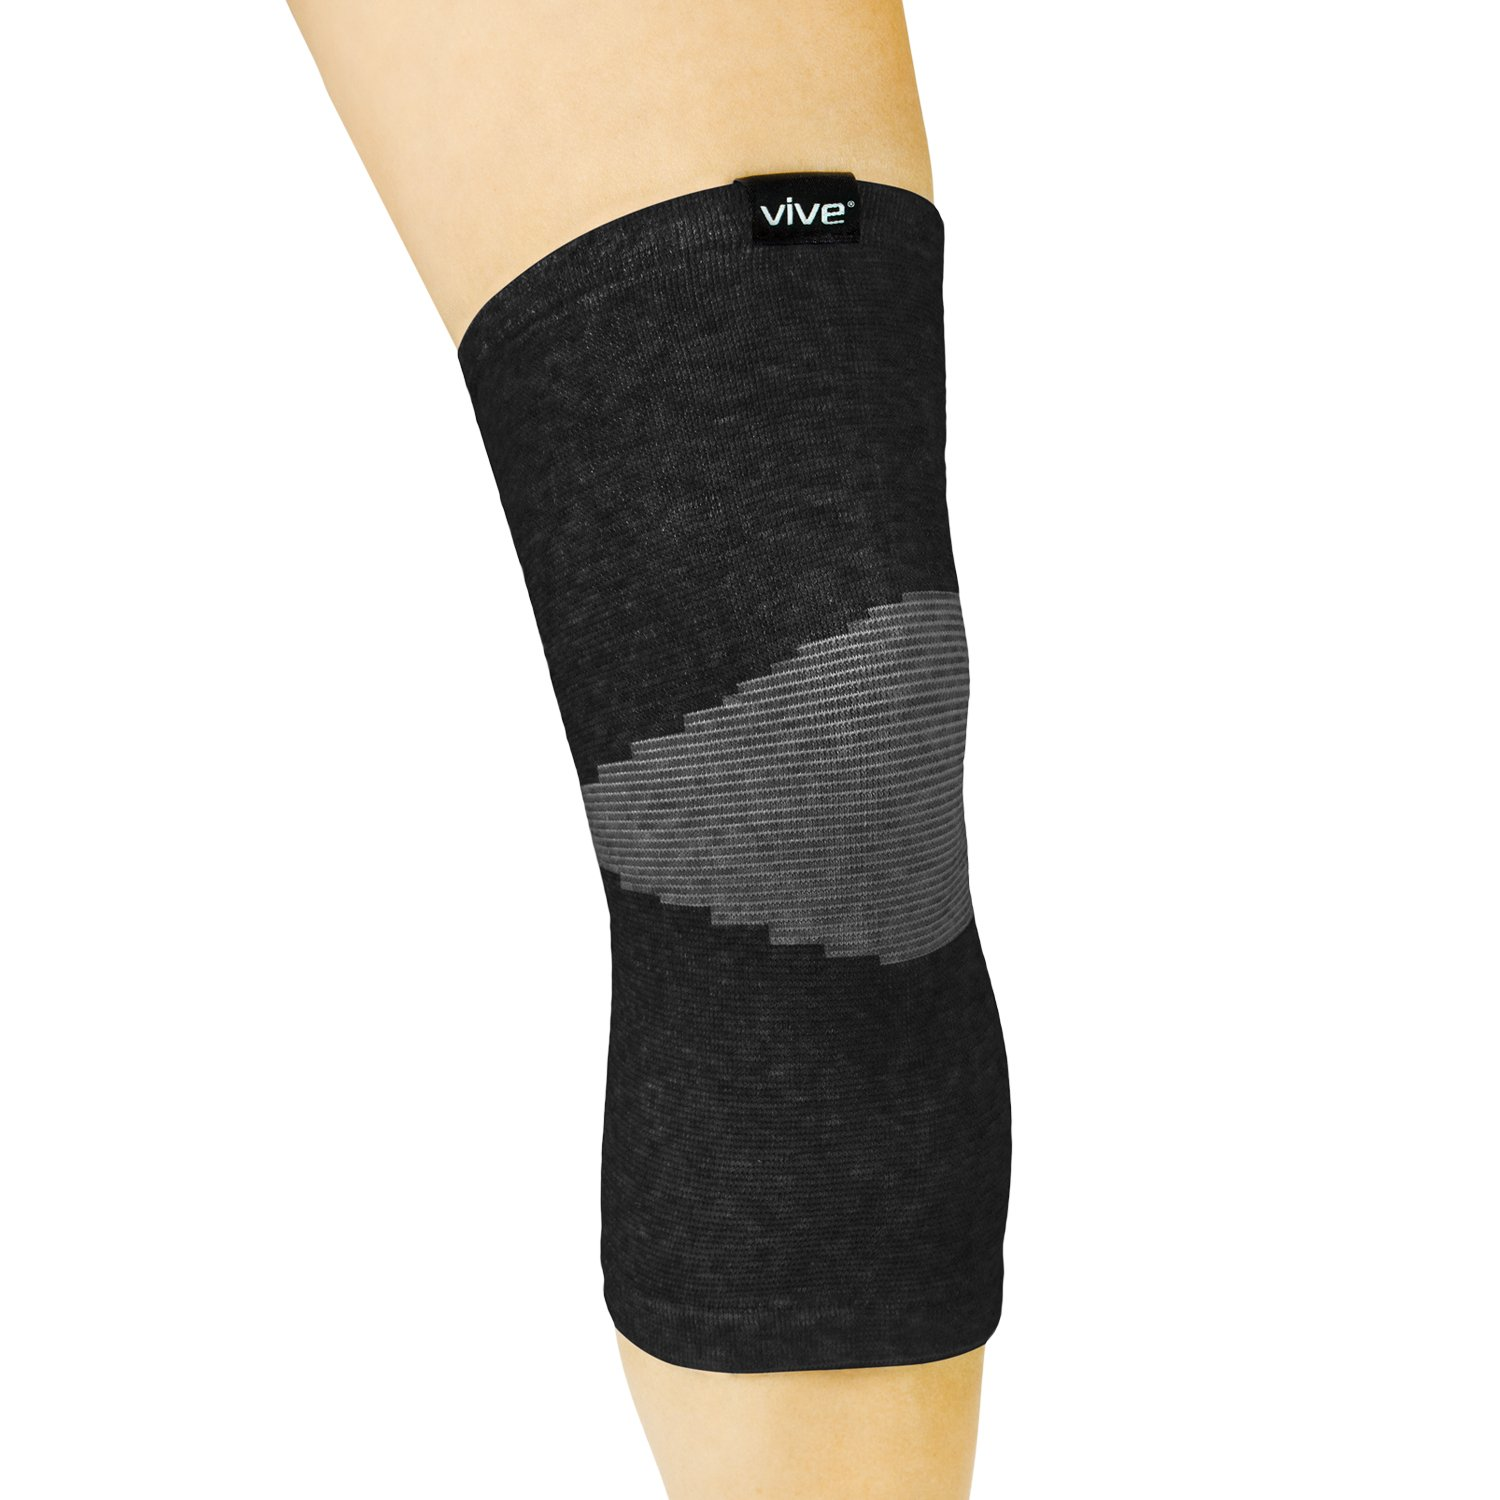 Vive Knee Sleeve (Pair) - Bamboo Charcoal Elastic Compression Brace - Support for Improved Circulation, Recovery, Arthritis Joint Pain - Sports, Running, Jogging - Men, Women (Black)